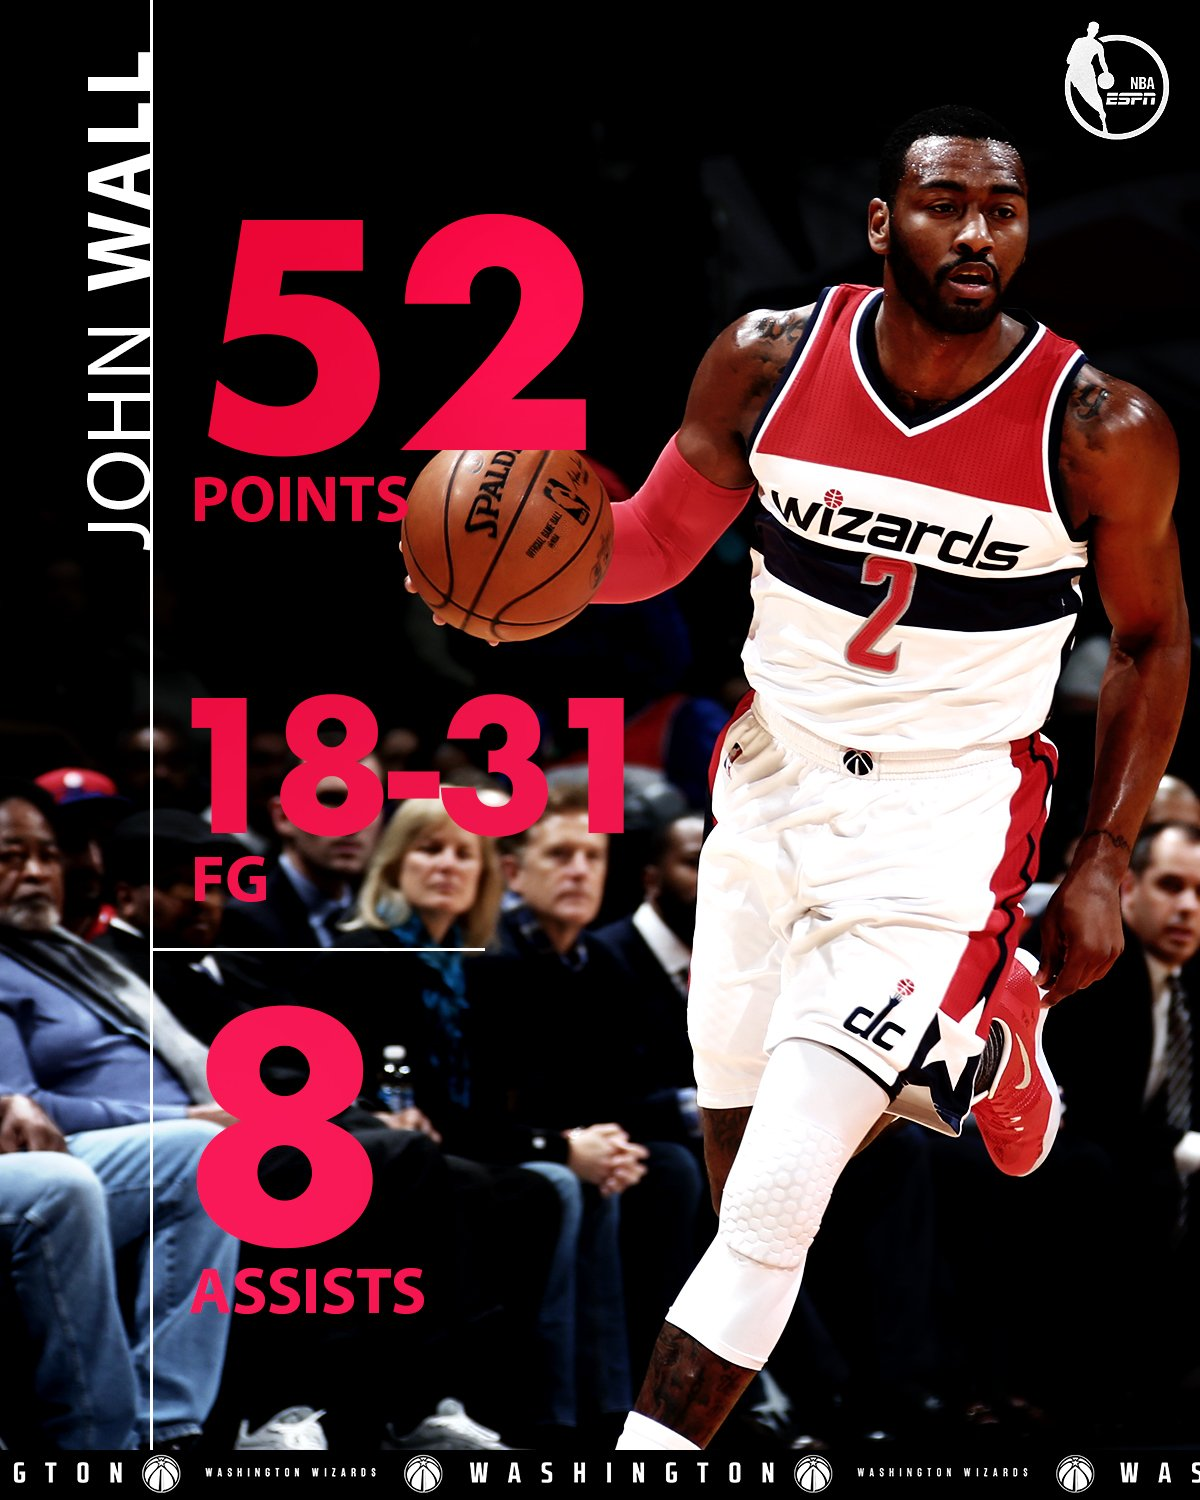 John Wall and Michael Jordan now have the same number of 50-pt games in a Wizards uniform: 1️⃣ https://t.co/2wtbCpexOB